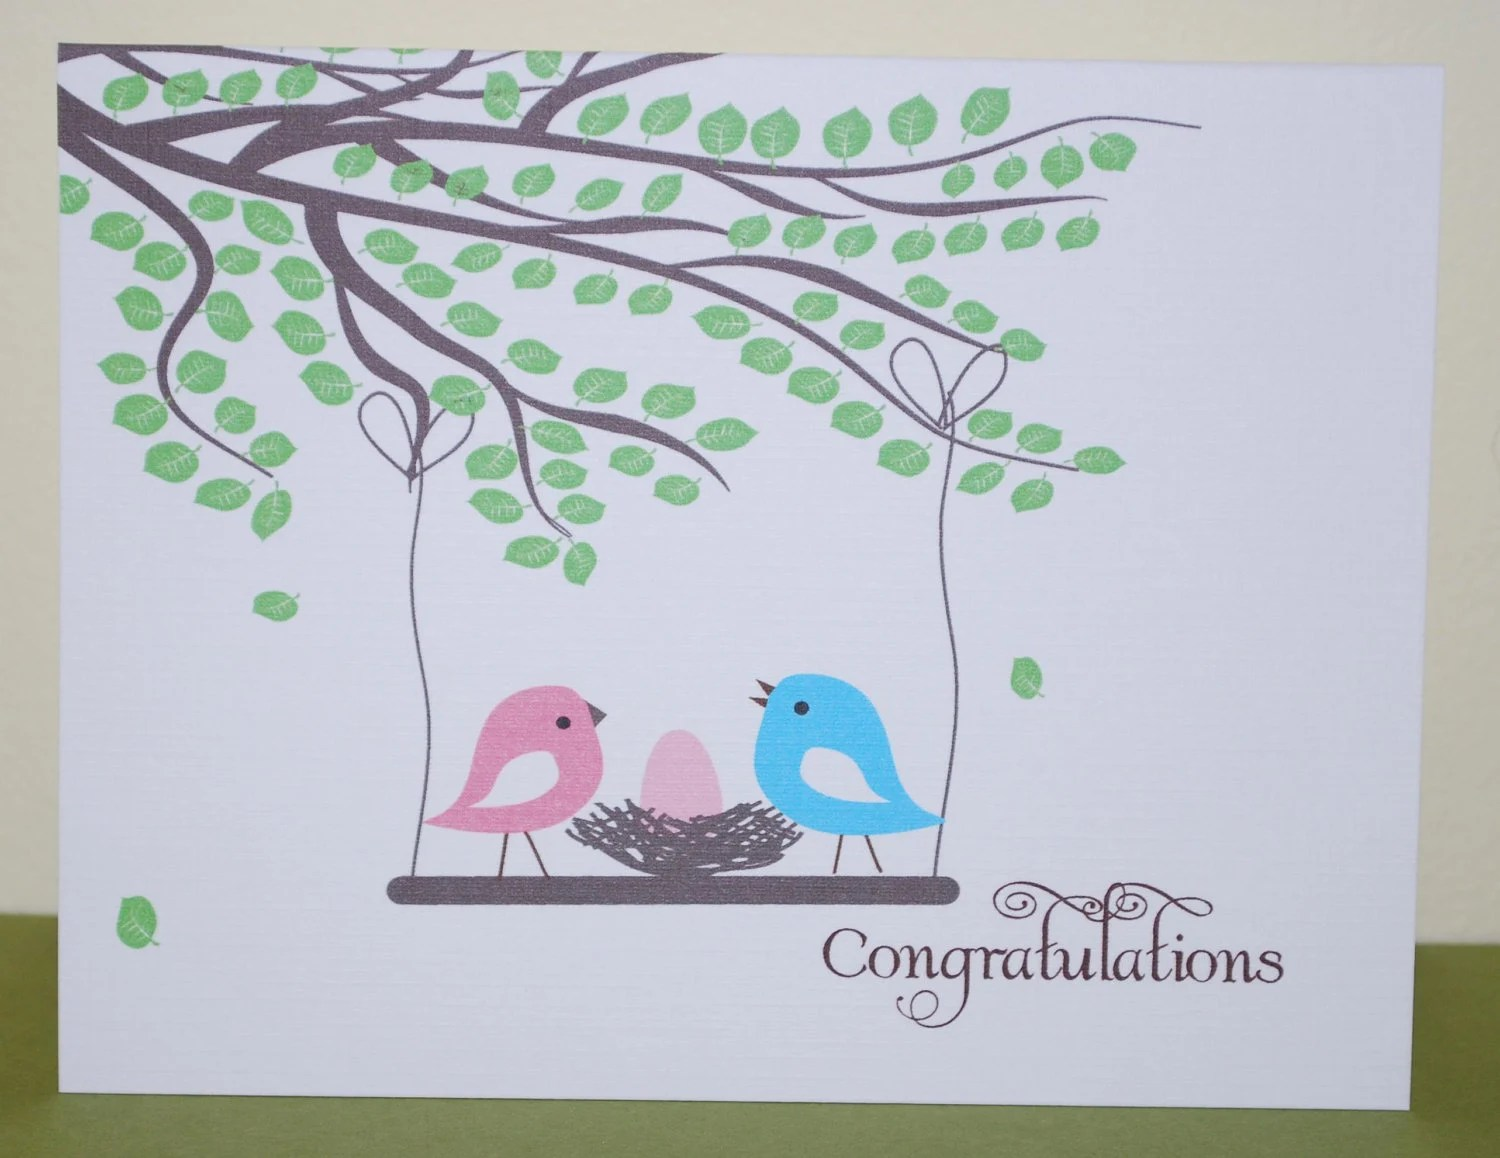 Congratulations New Baby Card Personalized Baby Card Etsy